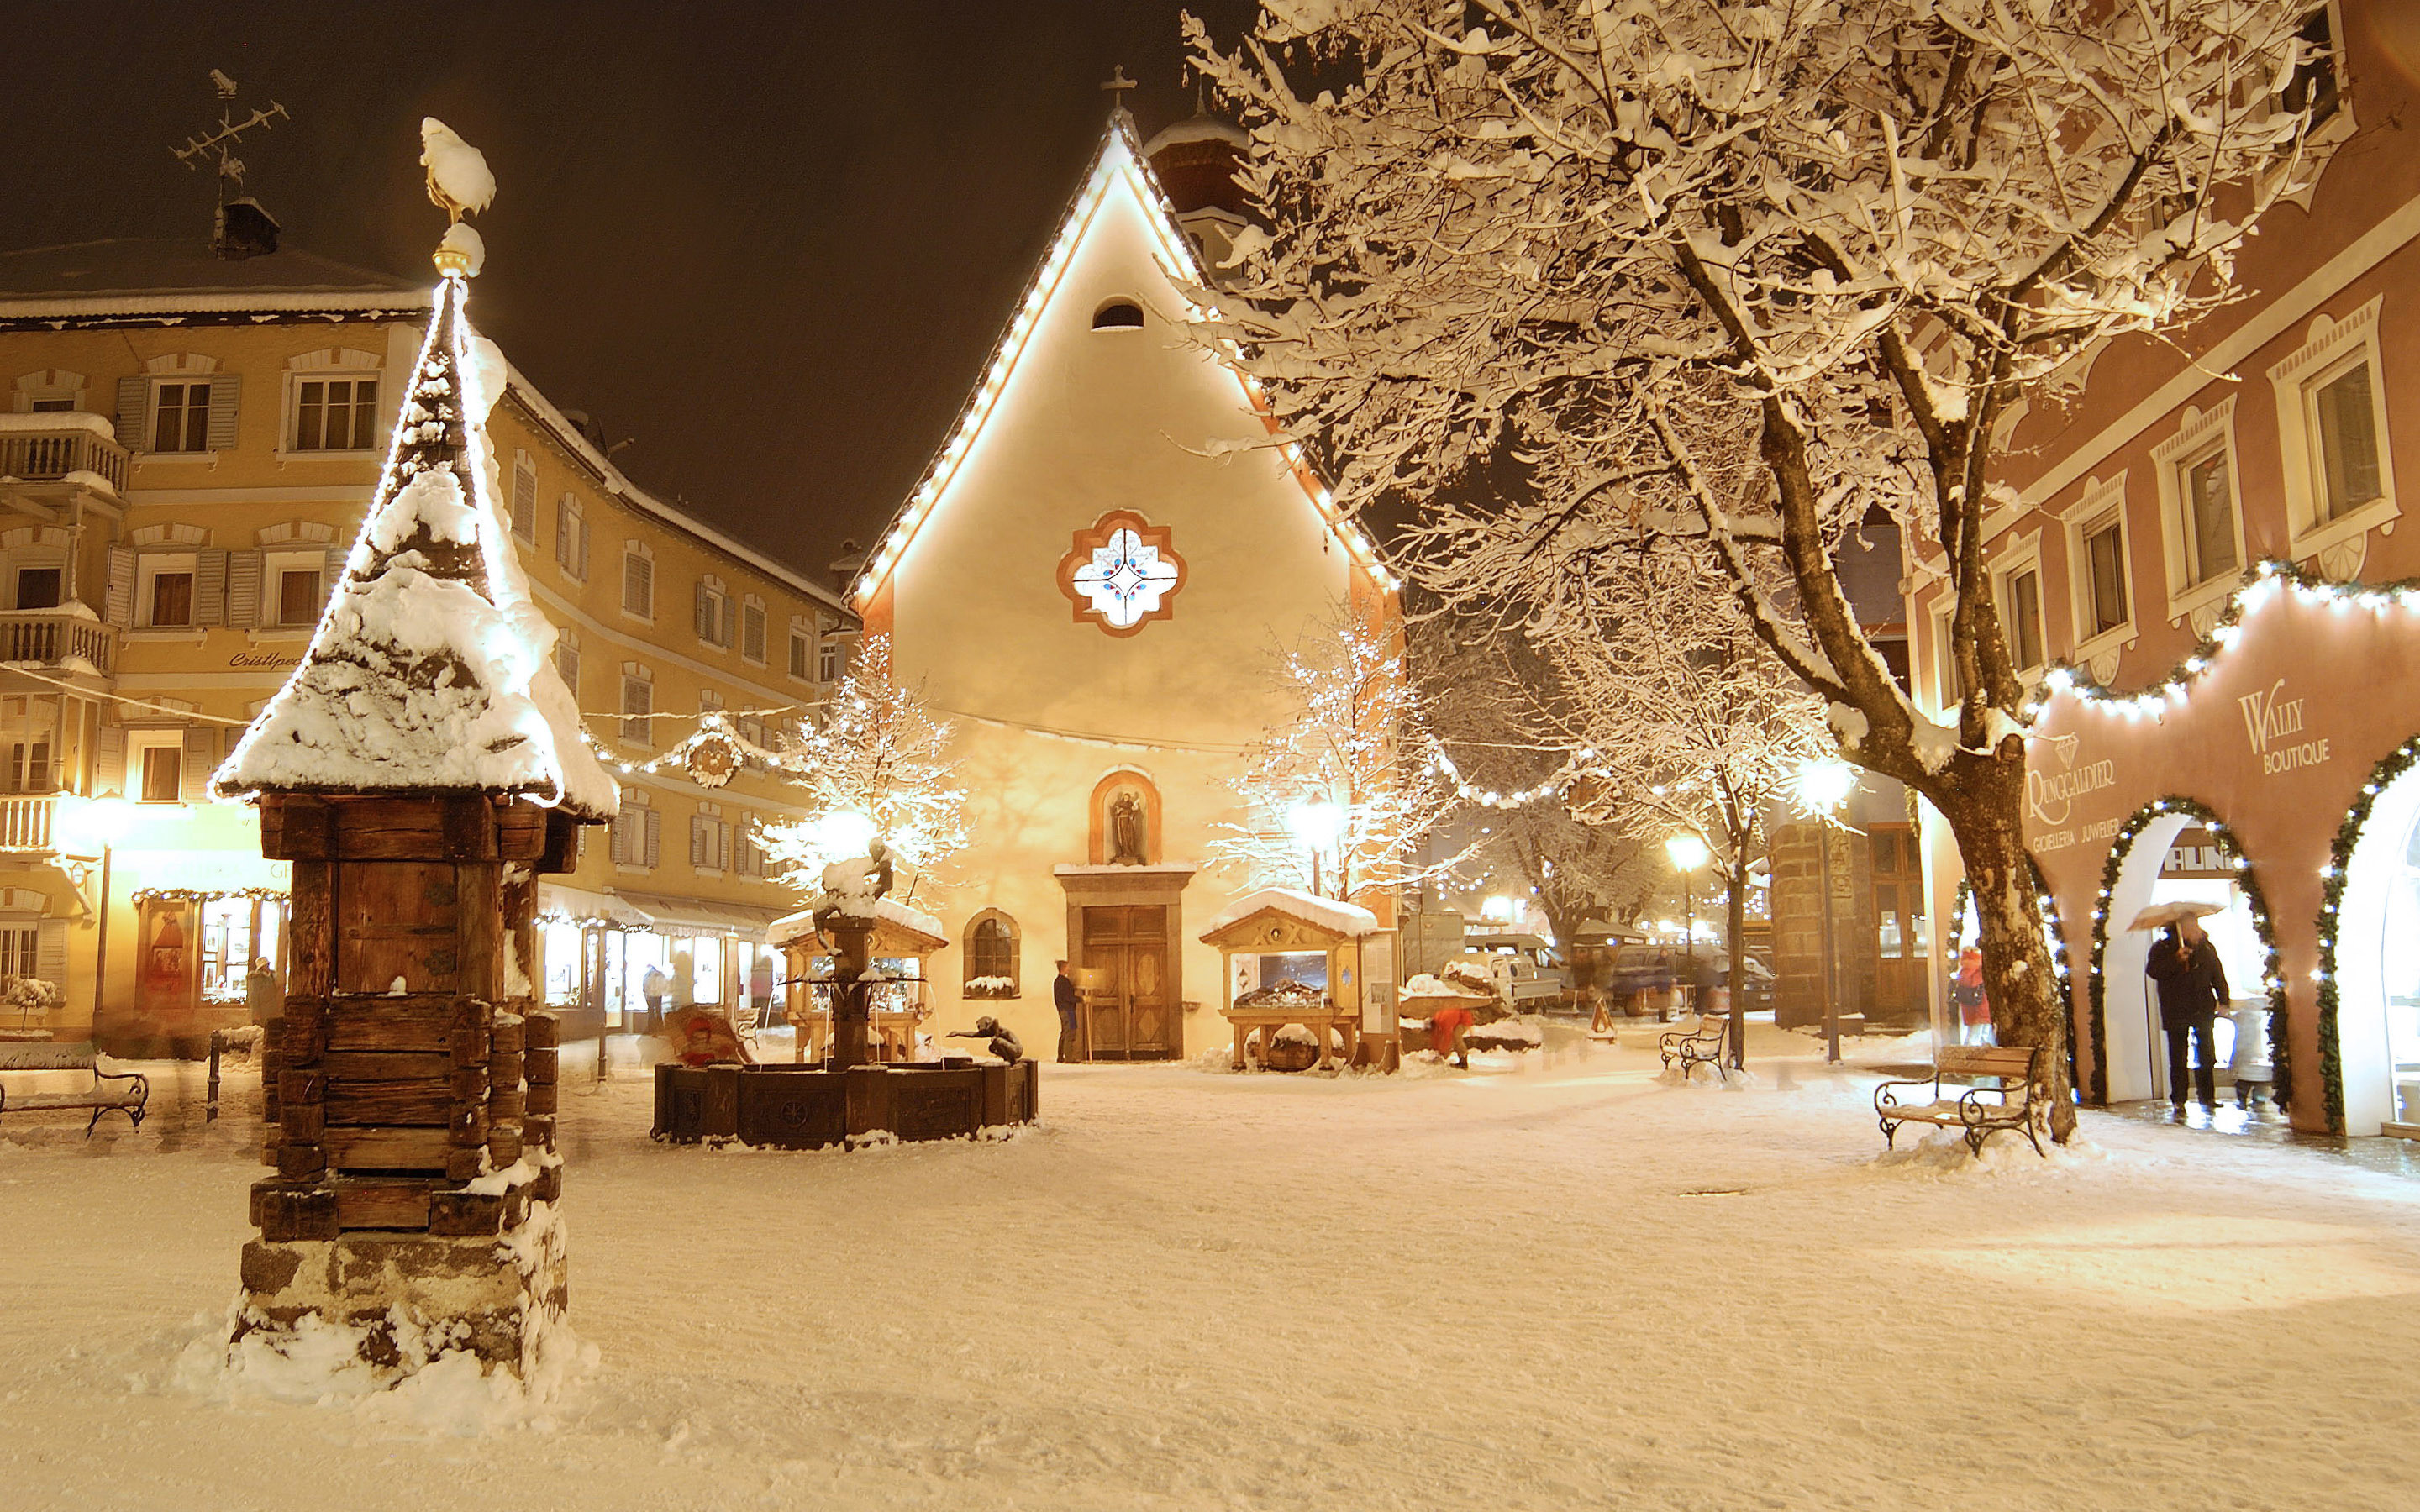 Res: 2880x1800, Christmas Photography Tumblr Cool Wallpapers